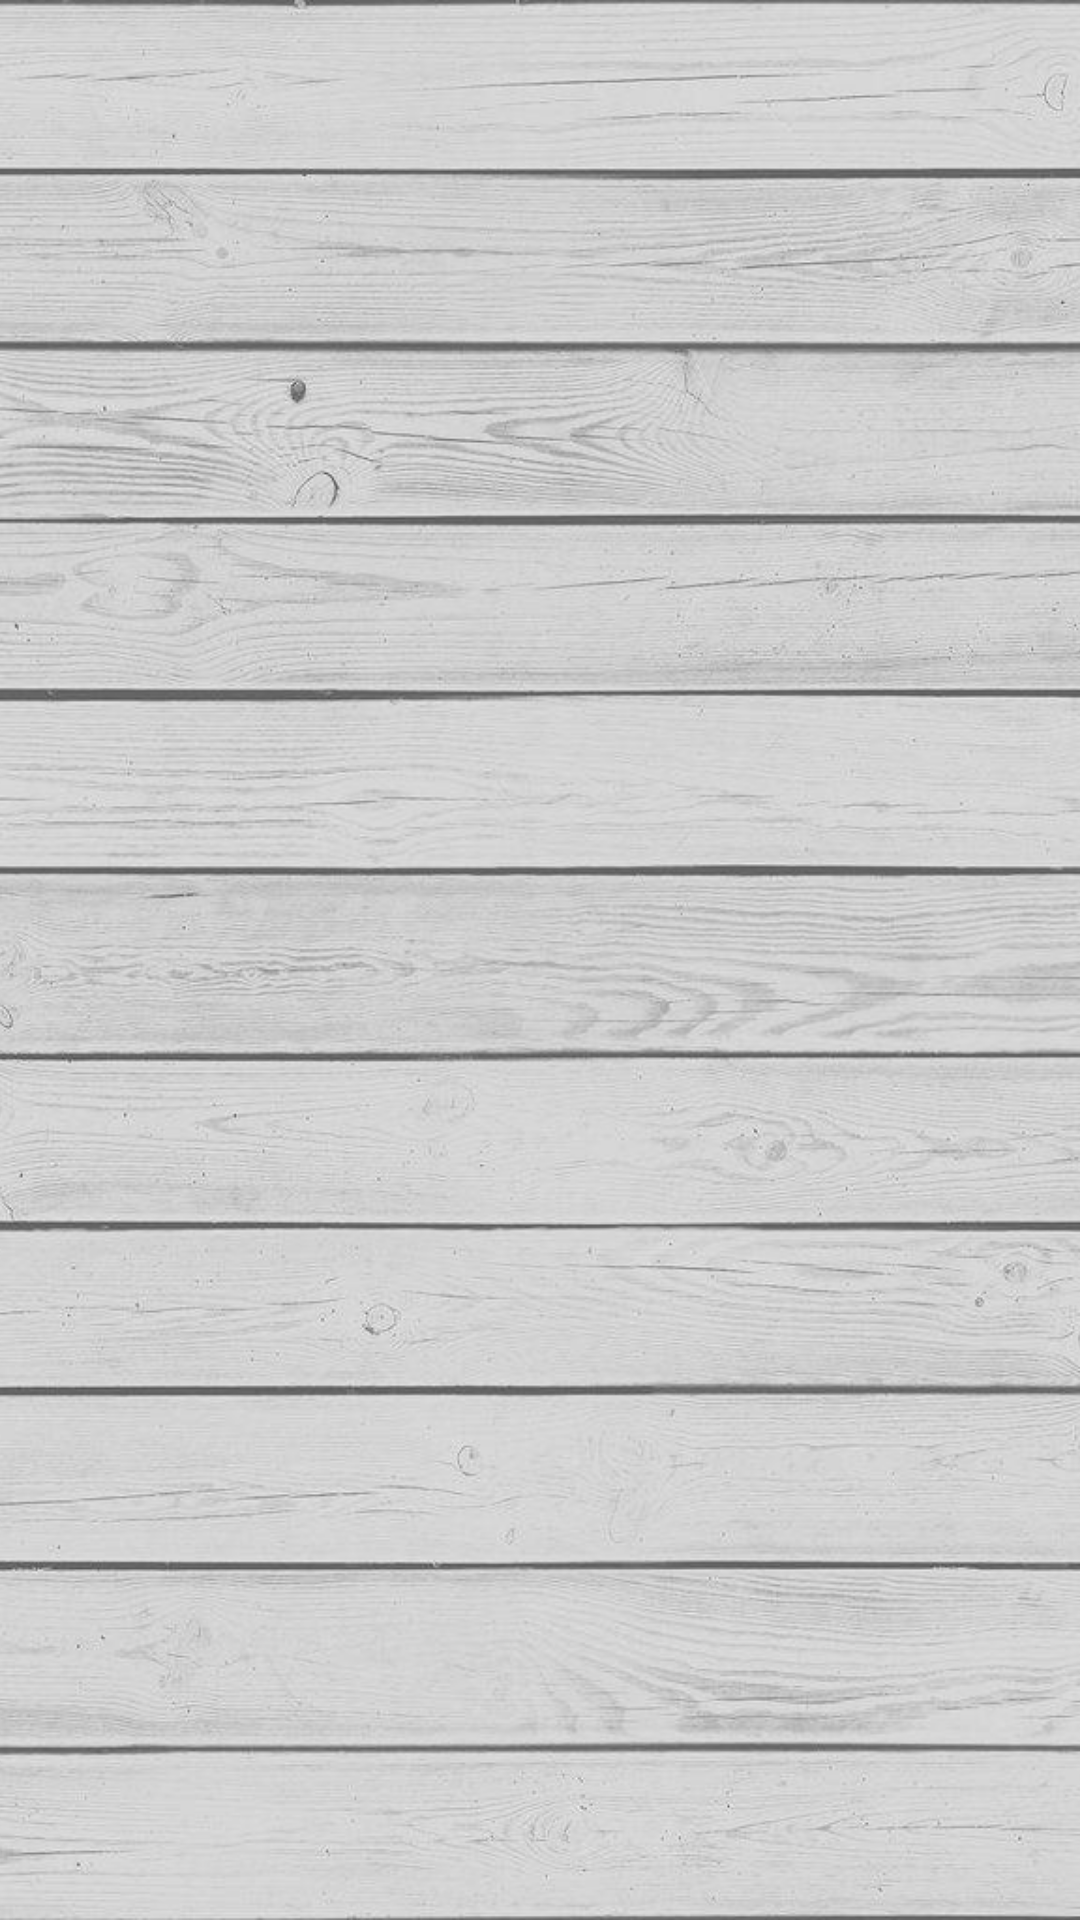 Grey Shiplap Textured Peel And Stick Removable Wallpaper 365b Gray Shiplap Wood Pattern Wallpaper Removable Wallpaper